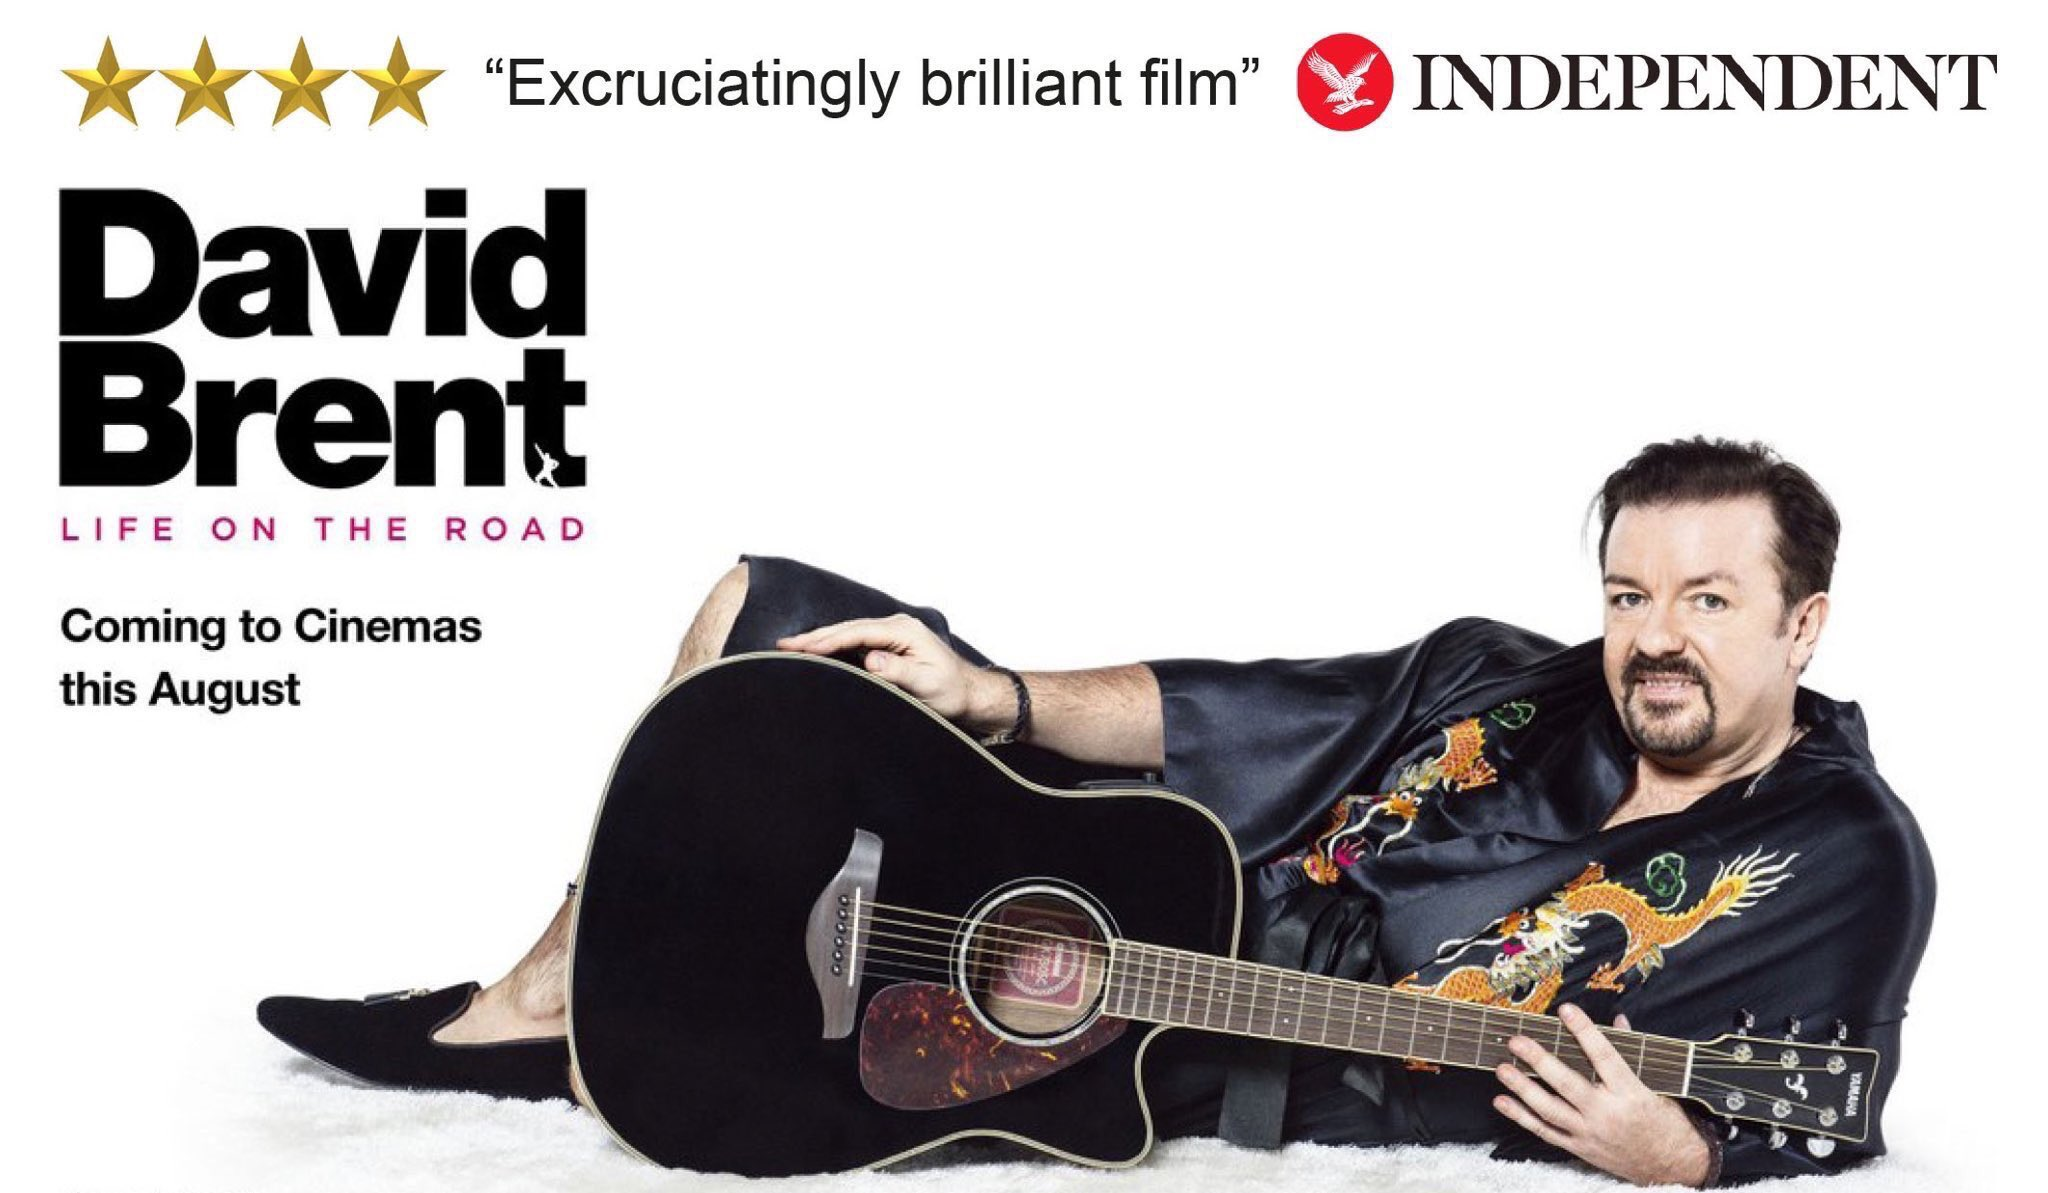 "RT @DavidBrentMovie: ""Excruciatingly brilliant film"" - @Independent https://t.co/IkuVbLnw7R #LifeOnTheRoad https://t.co/iokSzoYBxv"